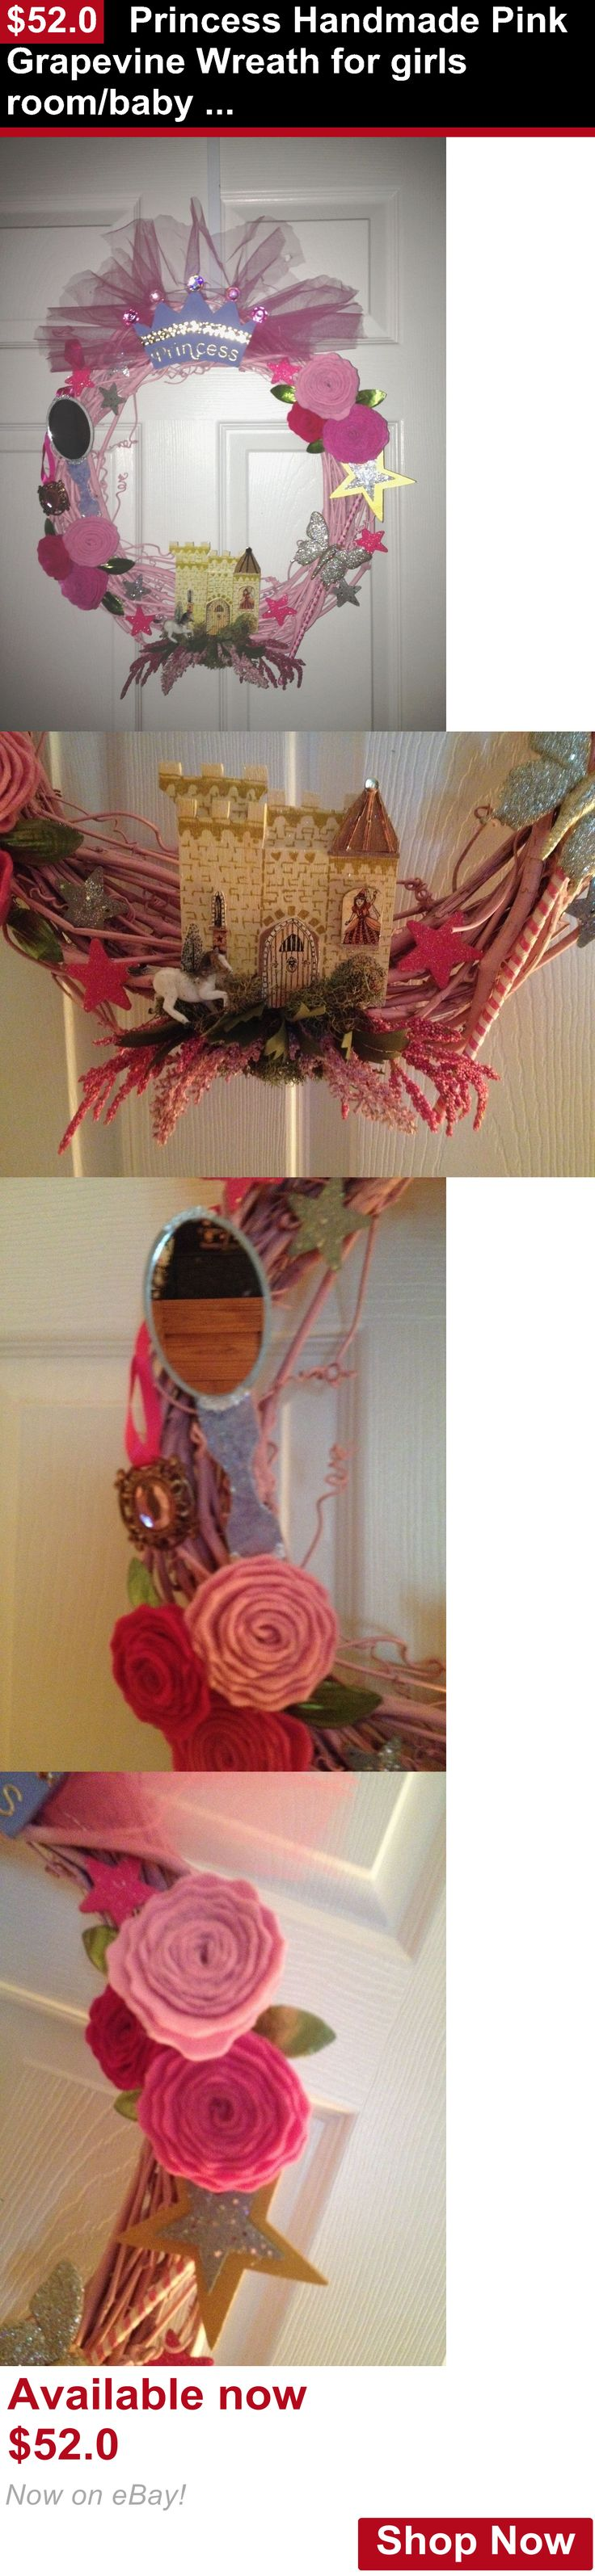 Wall Hangings: Princess Handmade Pink Grapevine Wreath For Girls Room/Baby Shower Gift Ooak BUY IT NOW ONLY: $52.0